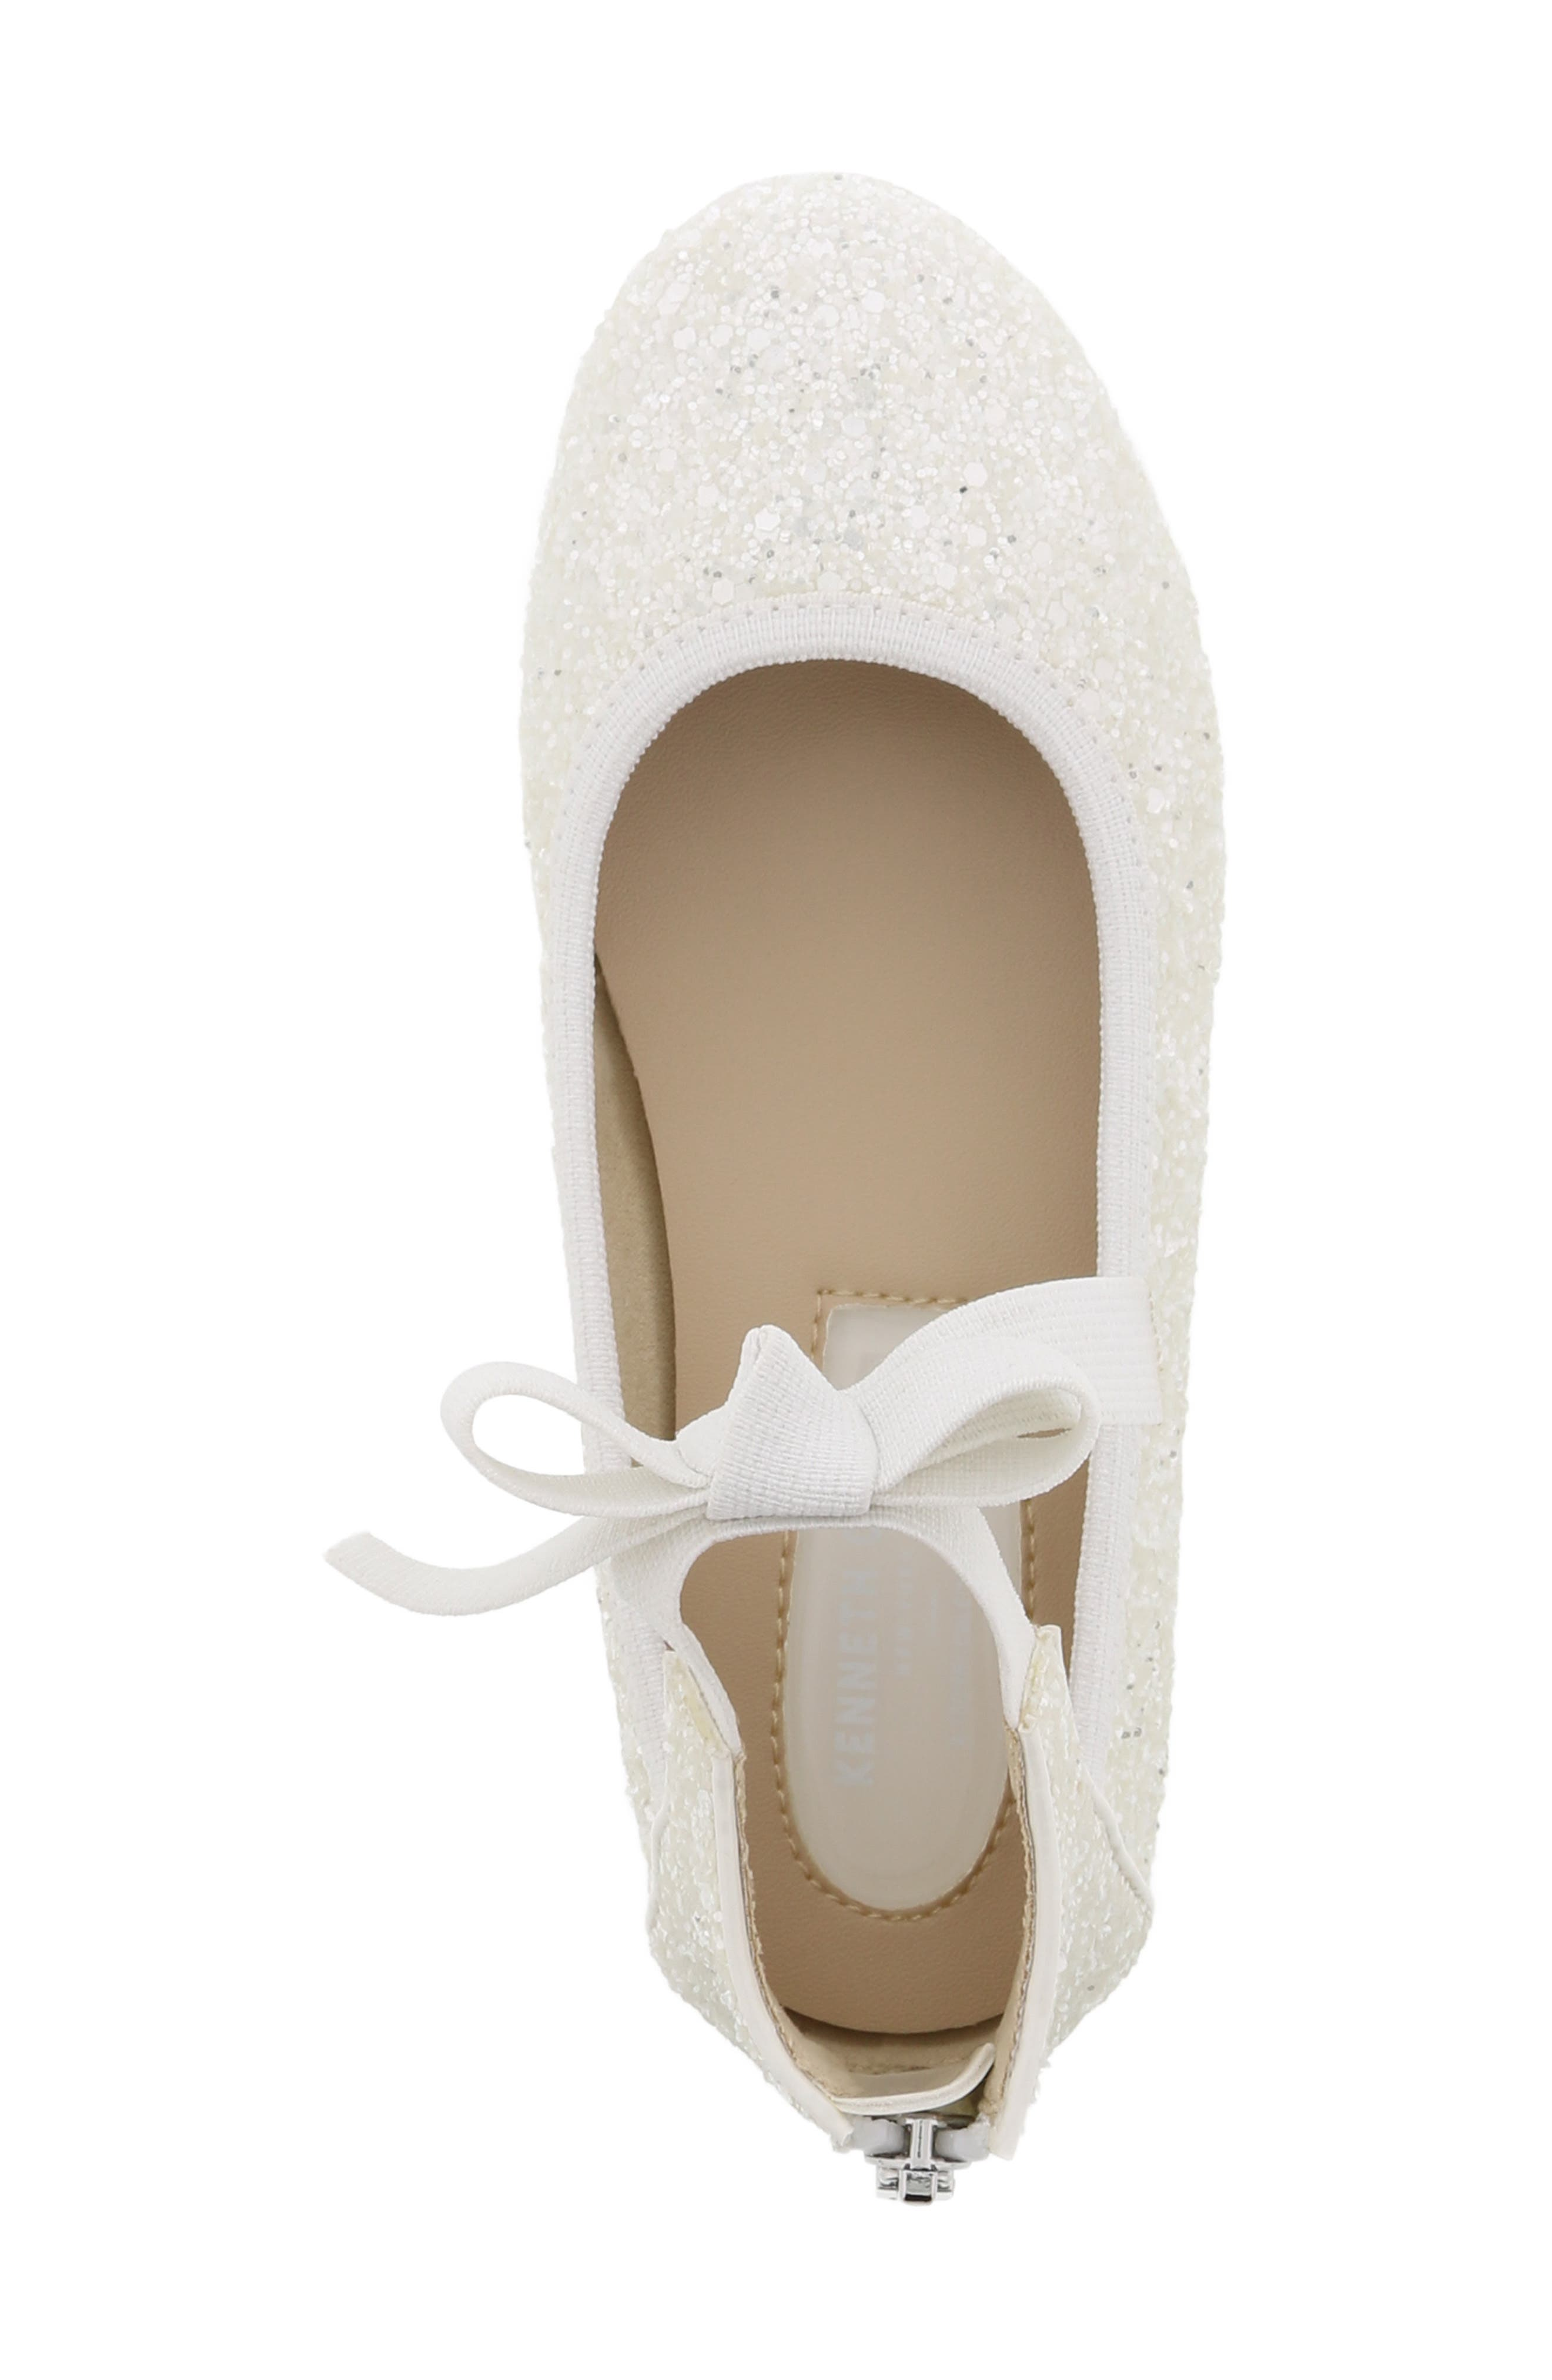 KENNETH COLE NEW YORK, Rose Bow Ballet Flat, Alternate thumbnail 5, color, WHITE SUGAR GLITTER